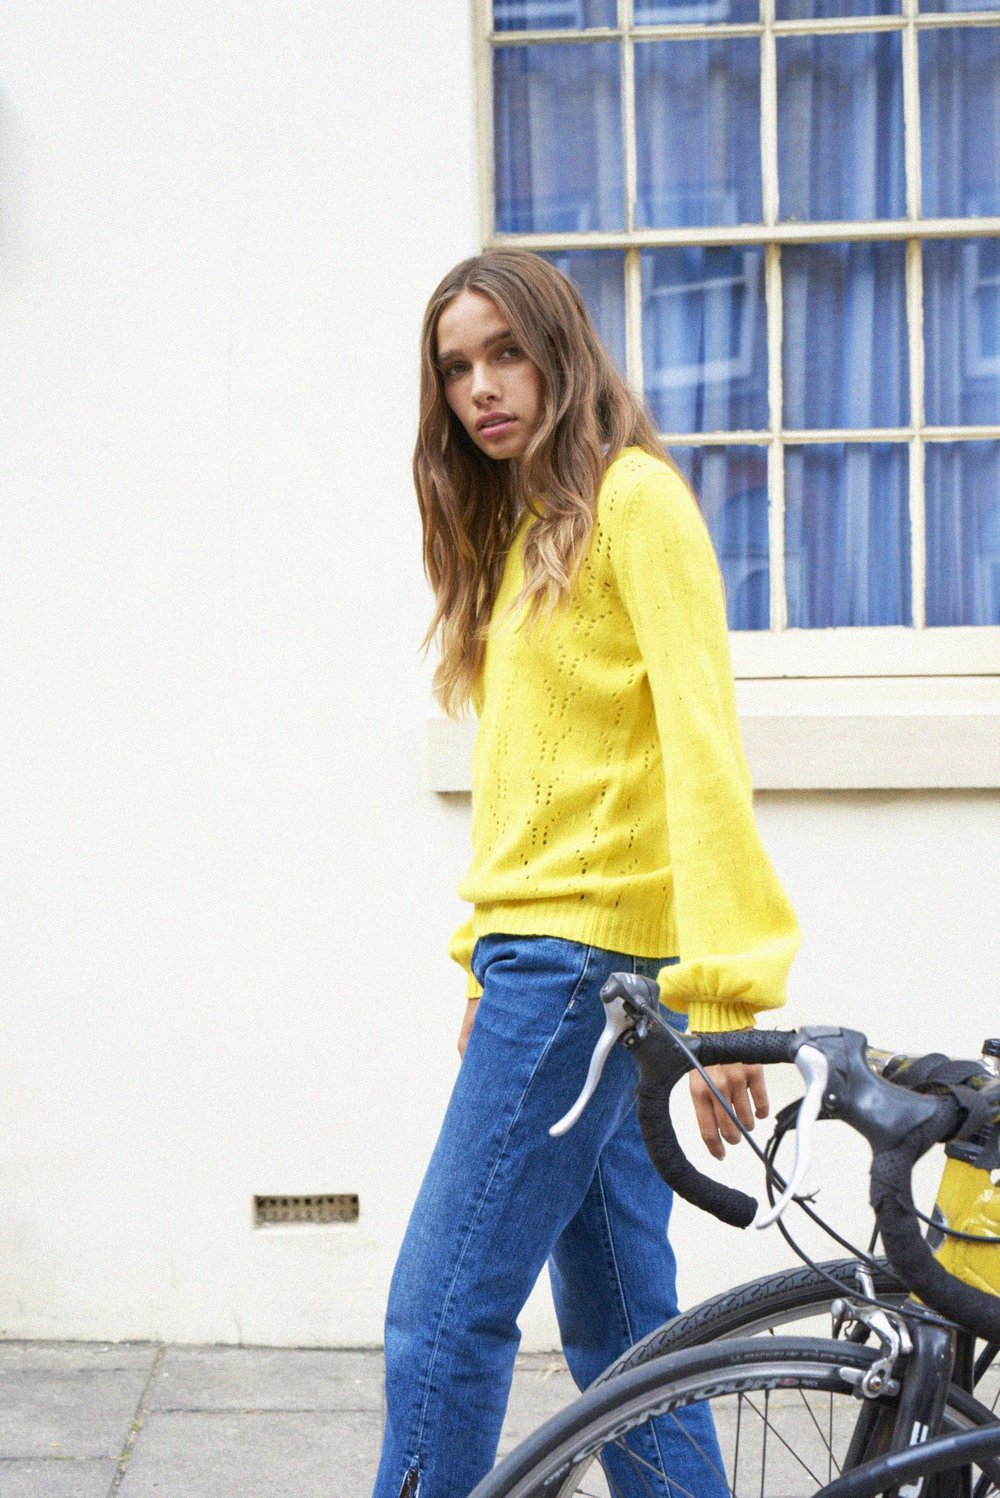 aw18_holy_balloon_campaign_jumper1234.jpg